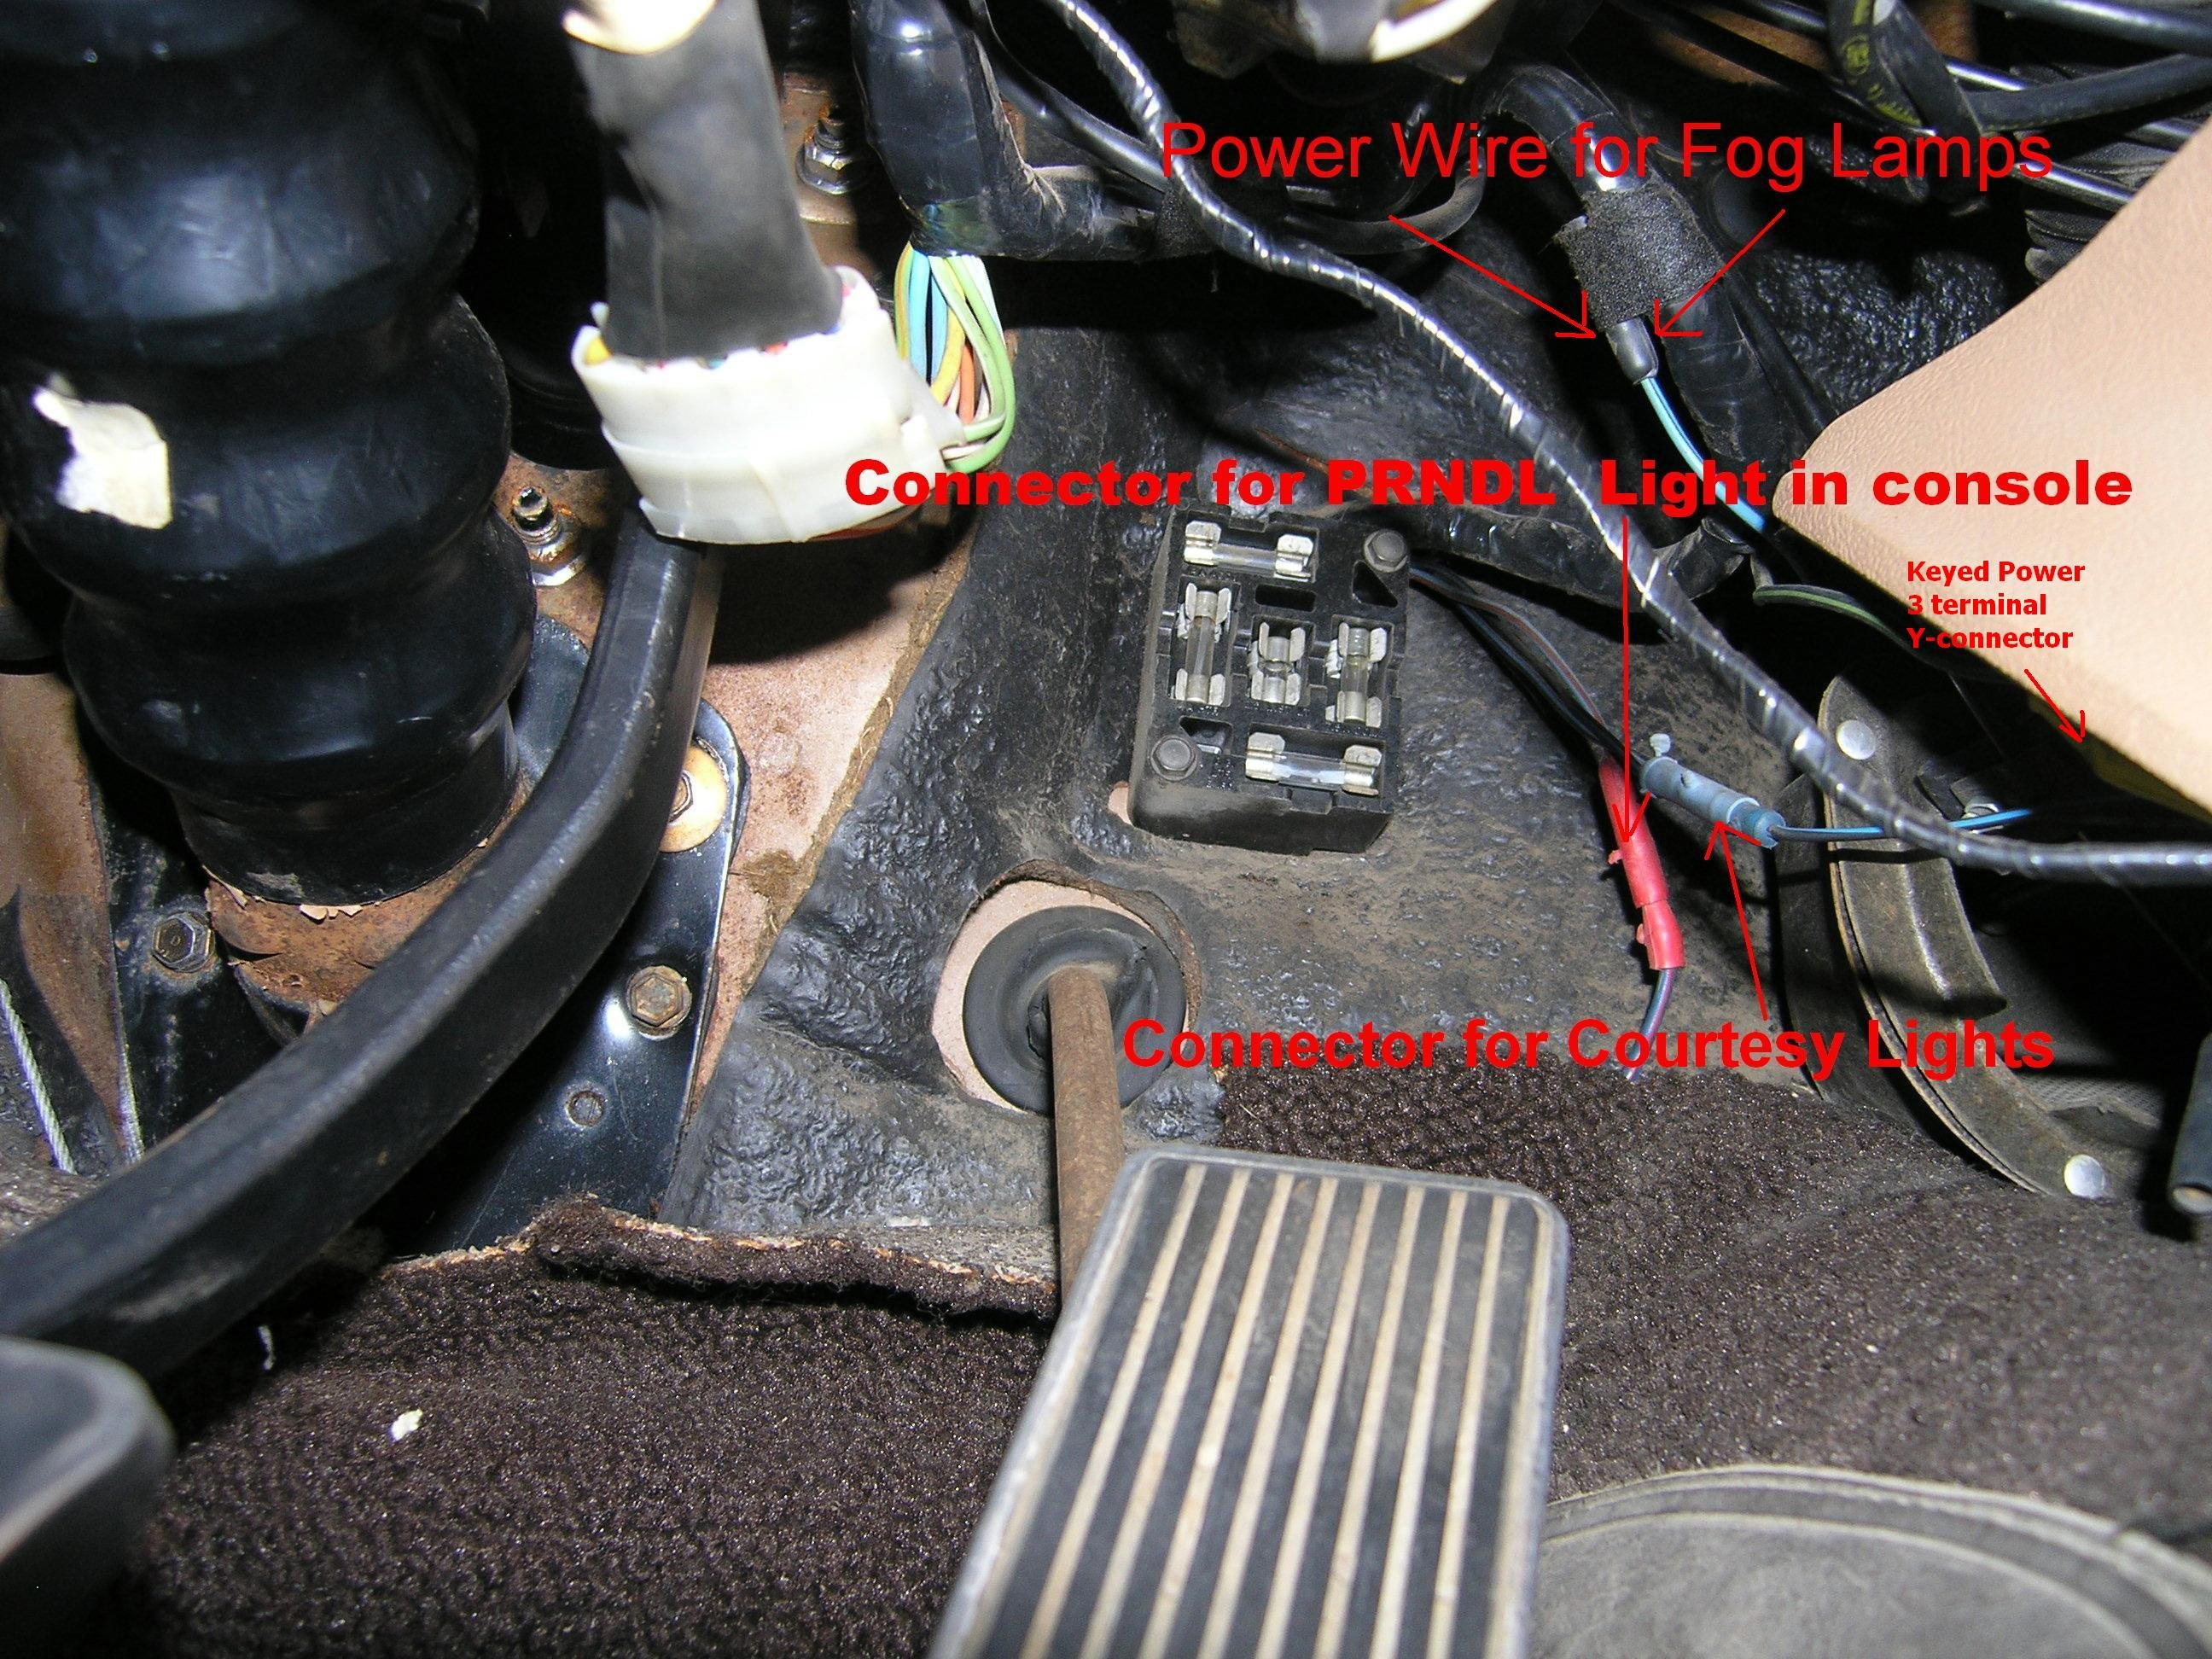 70707d1243480599 1966 foglight wiring question 67 68 mustang underdash wiring 1966 foglight wiring question ford mustang forum 1966 mustang fog light wiring diagram at soozxer.org